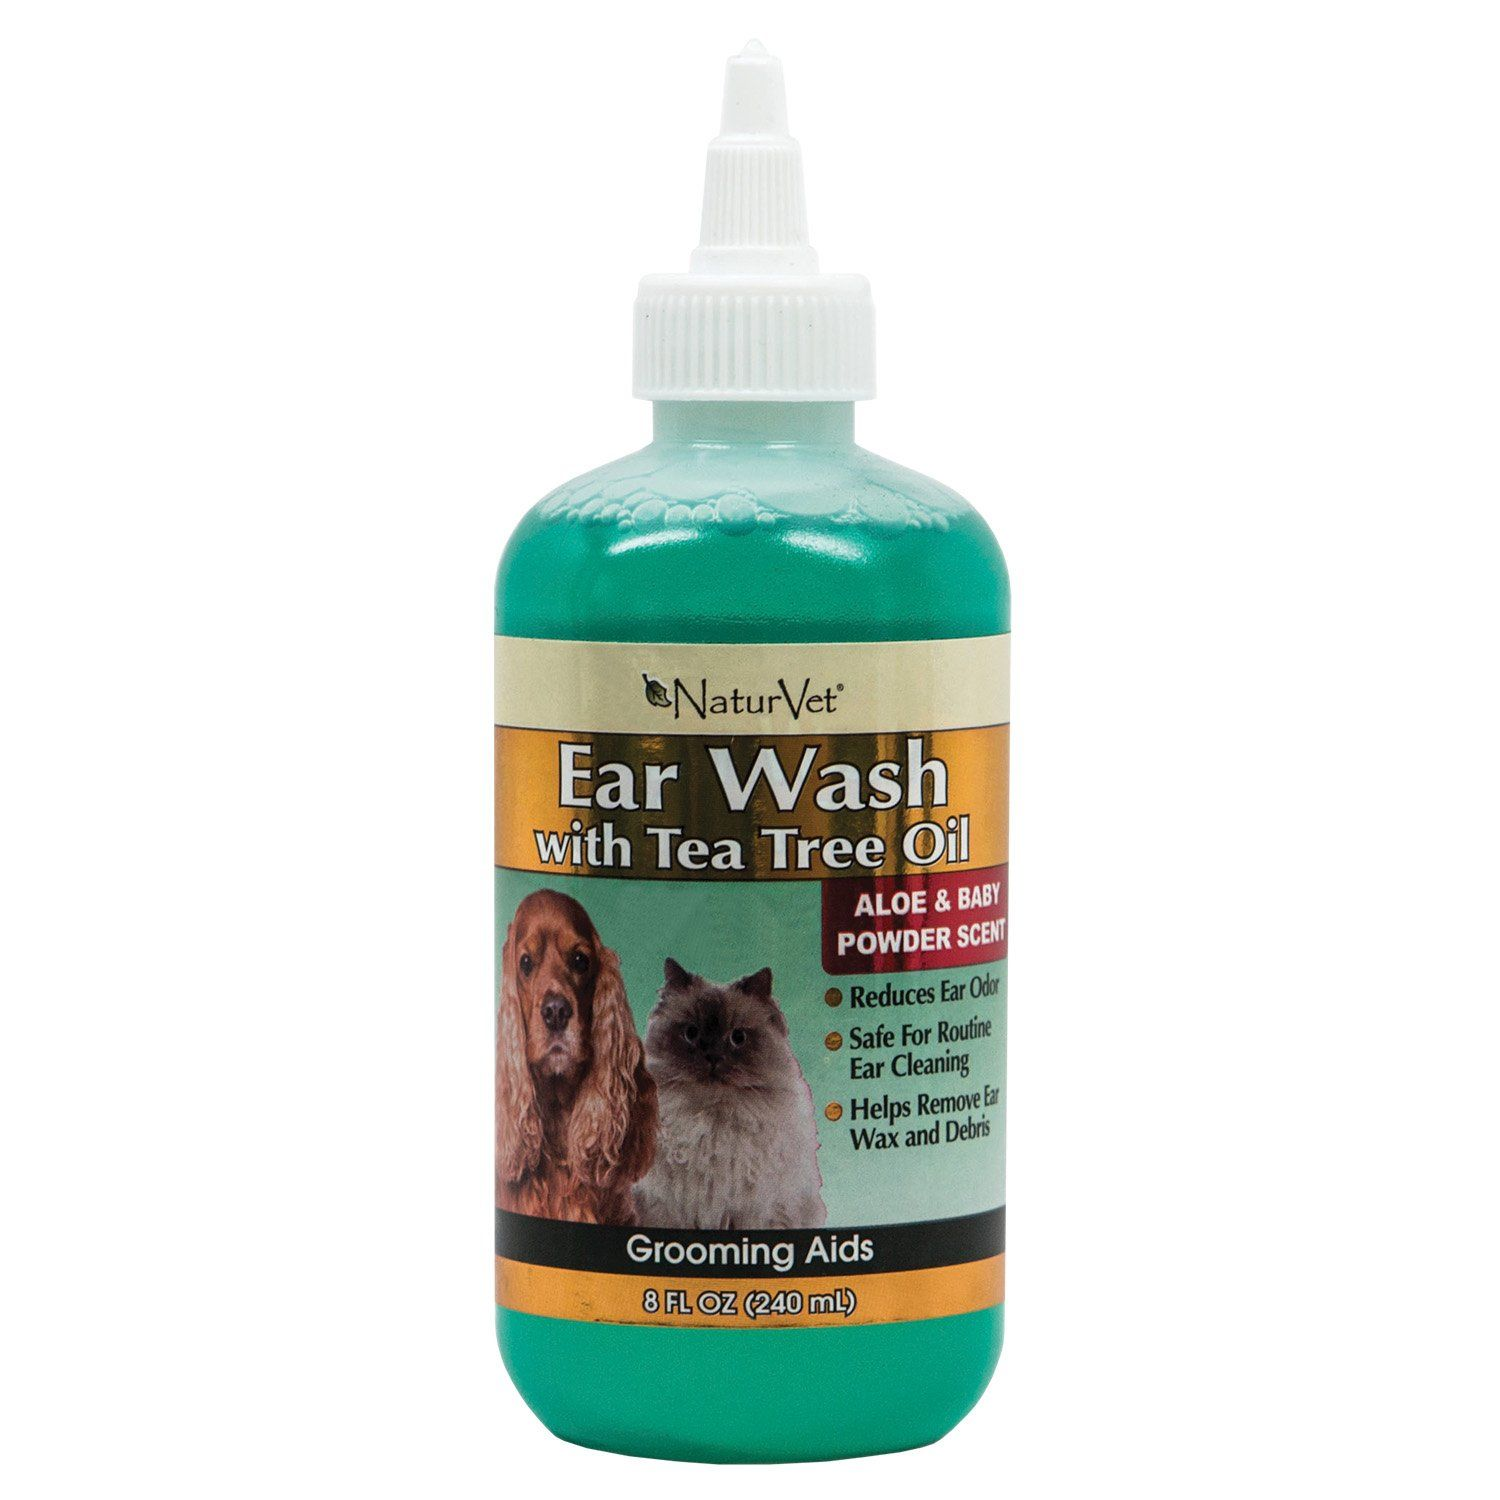 NaturVet Ear Wash with Tea Tree Oil for Pets Petco Store